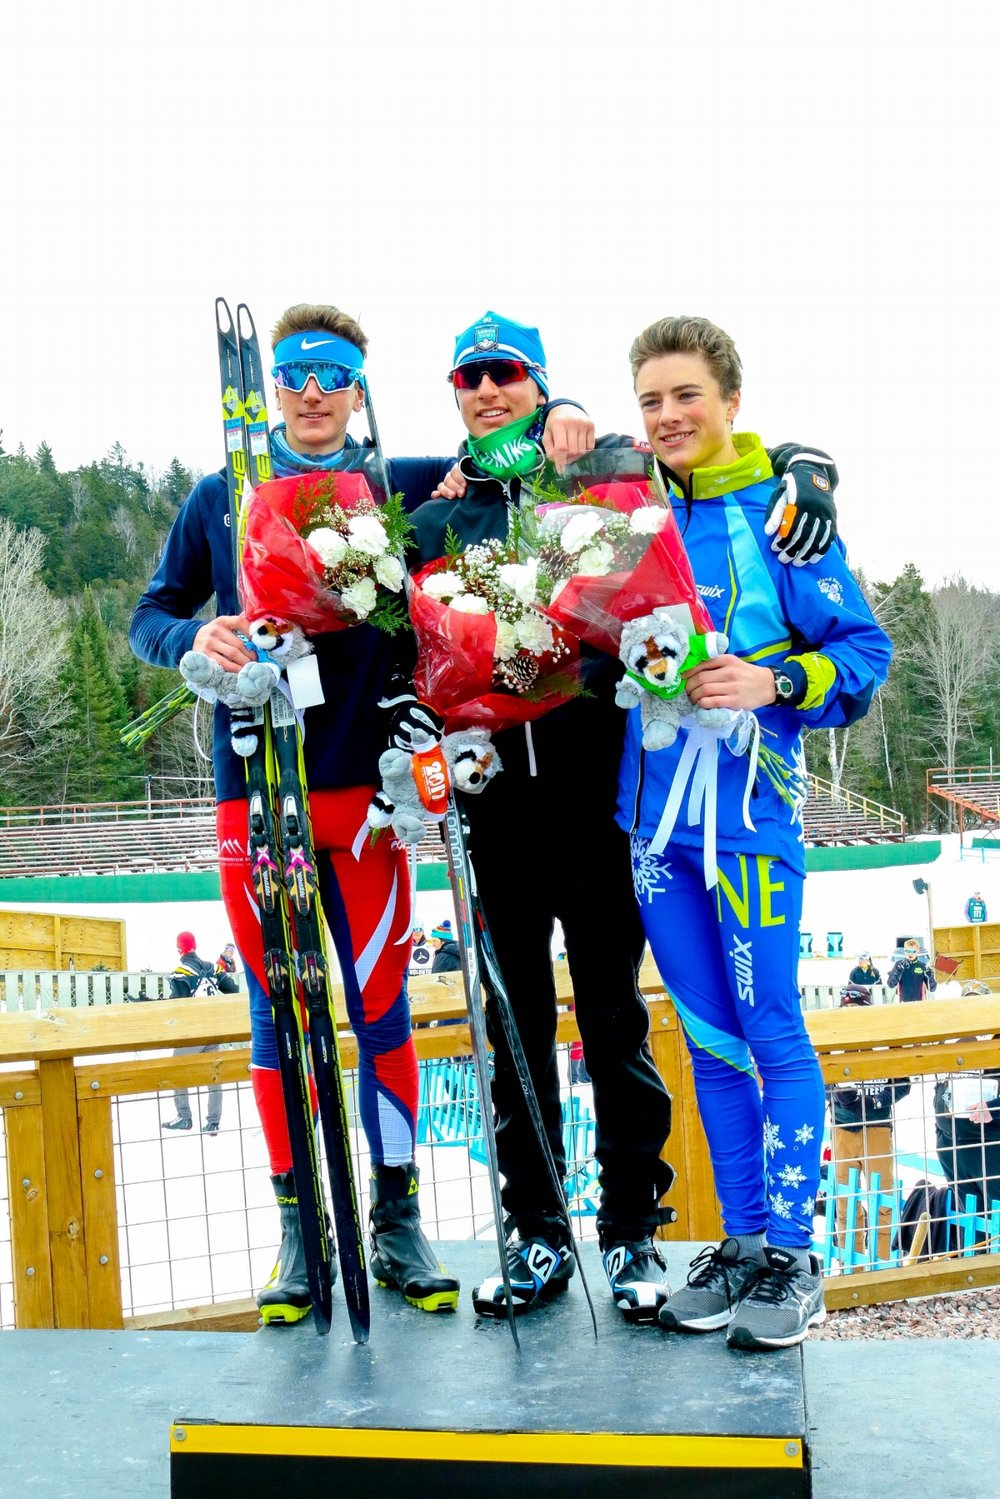 Men's U-16 Interval Freestyle 5k Podium: 1st Place- Haydn Halvorsen of Sugar Bowl Ski Team & Academy, 2nd Place- Johnny Hagenbuch of SVSEF, 3rd Place- Will Koch of Stratton Mountain School